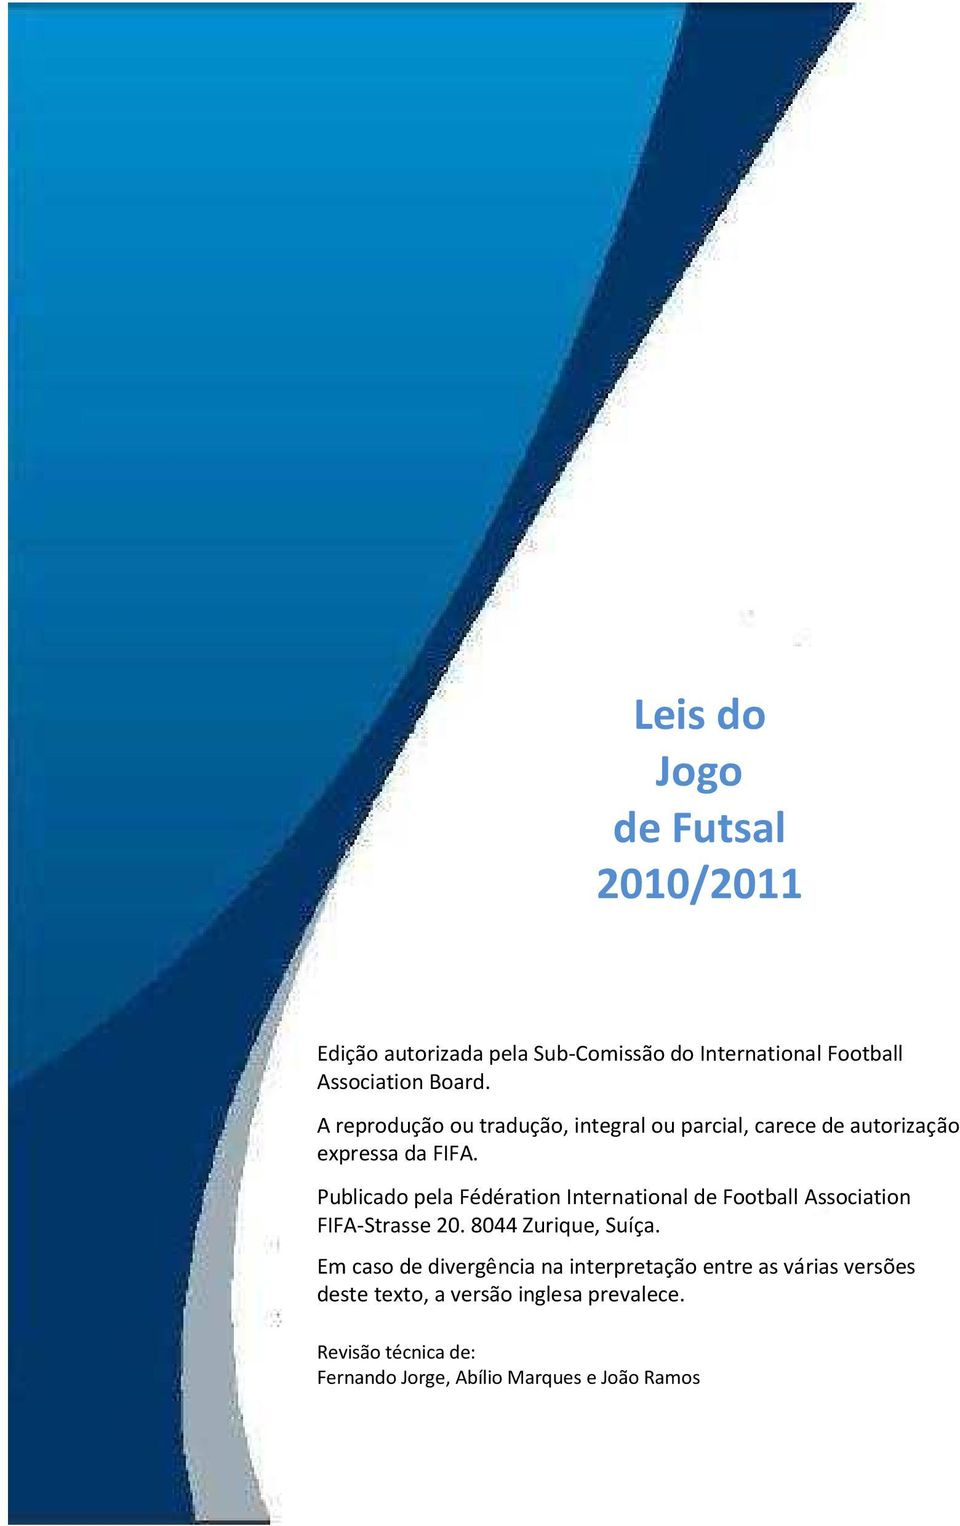 Publicado pela Fédération International de Football Association FIFA-Strasse 20. 8044 Zurique, Suíça.